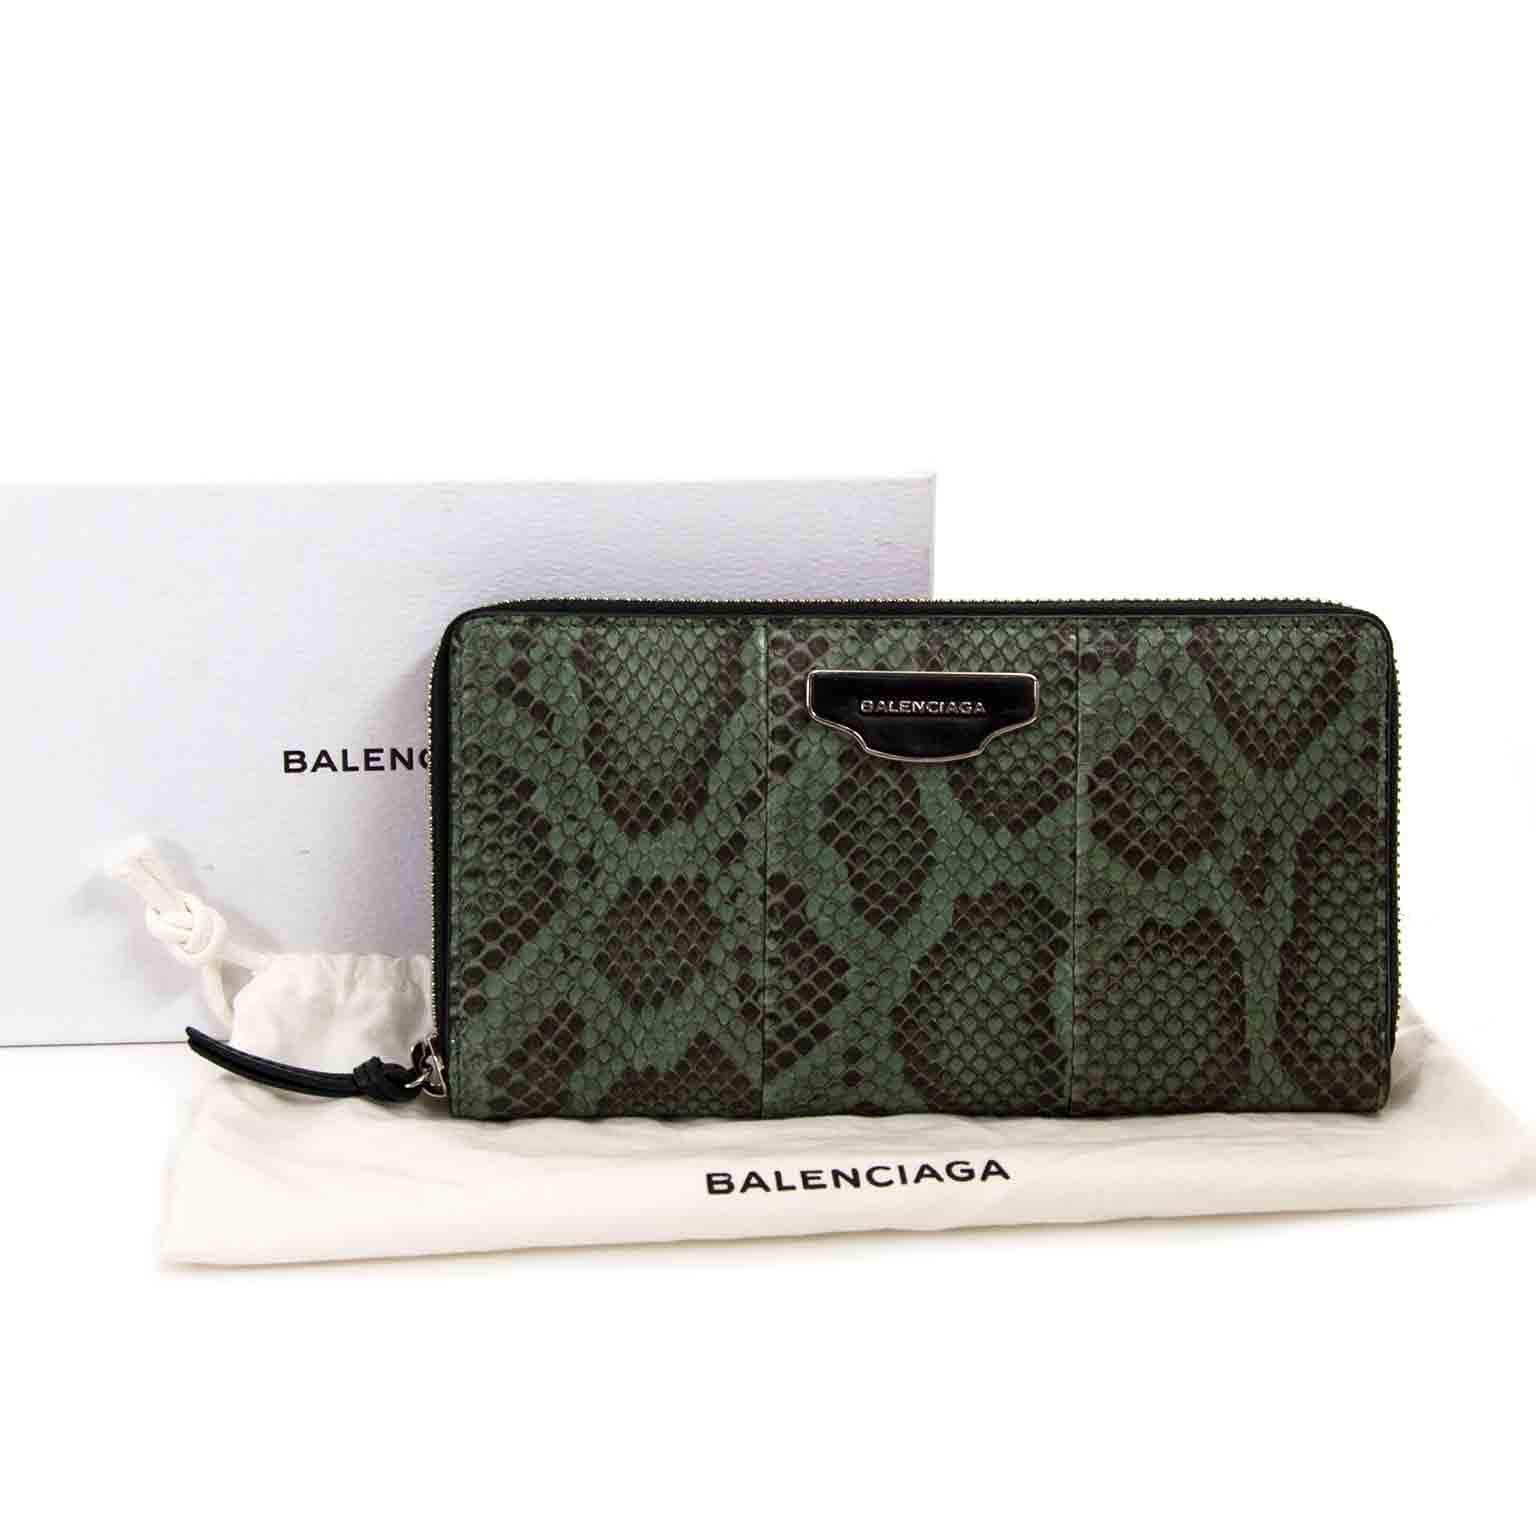 balenciaga green python zip around wallet now for sale at labellov vintage fashion webshop belgium